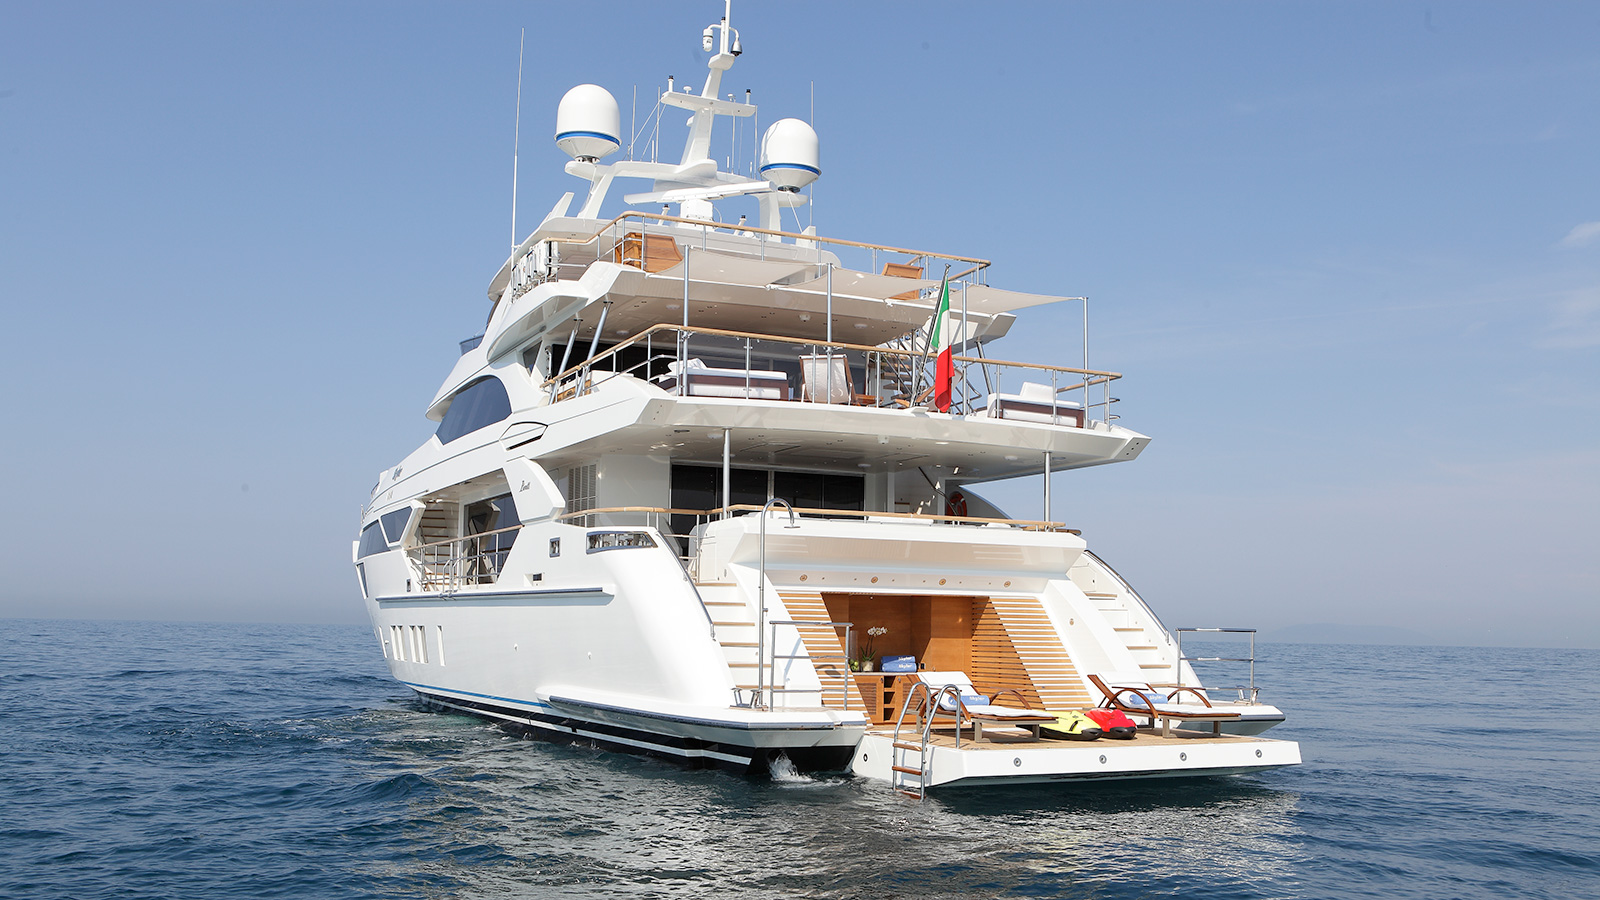 aft-view-of-the-benetti-fast-125-yacht-skyler